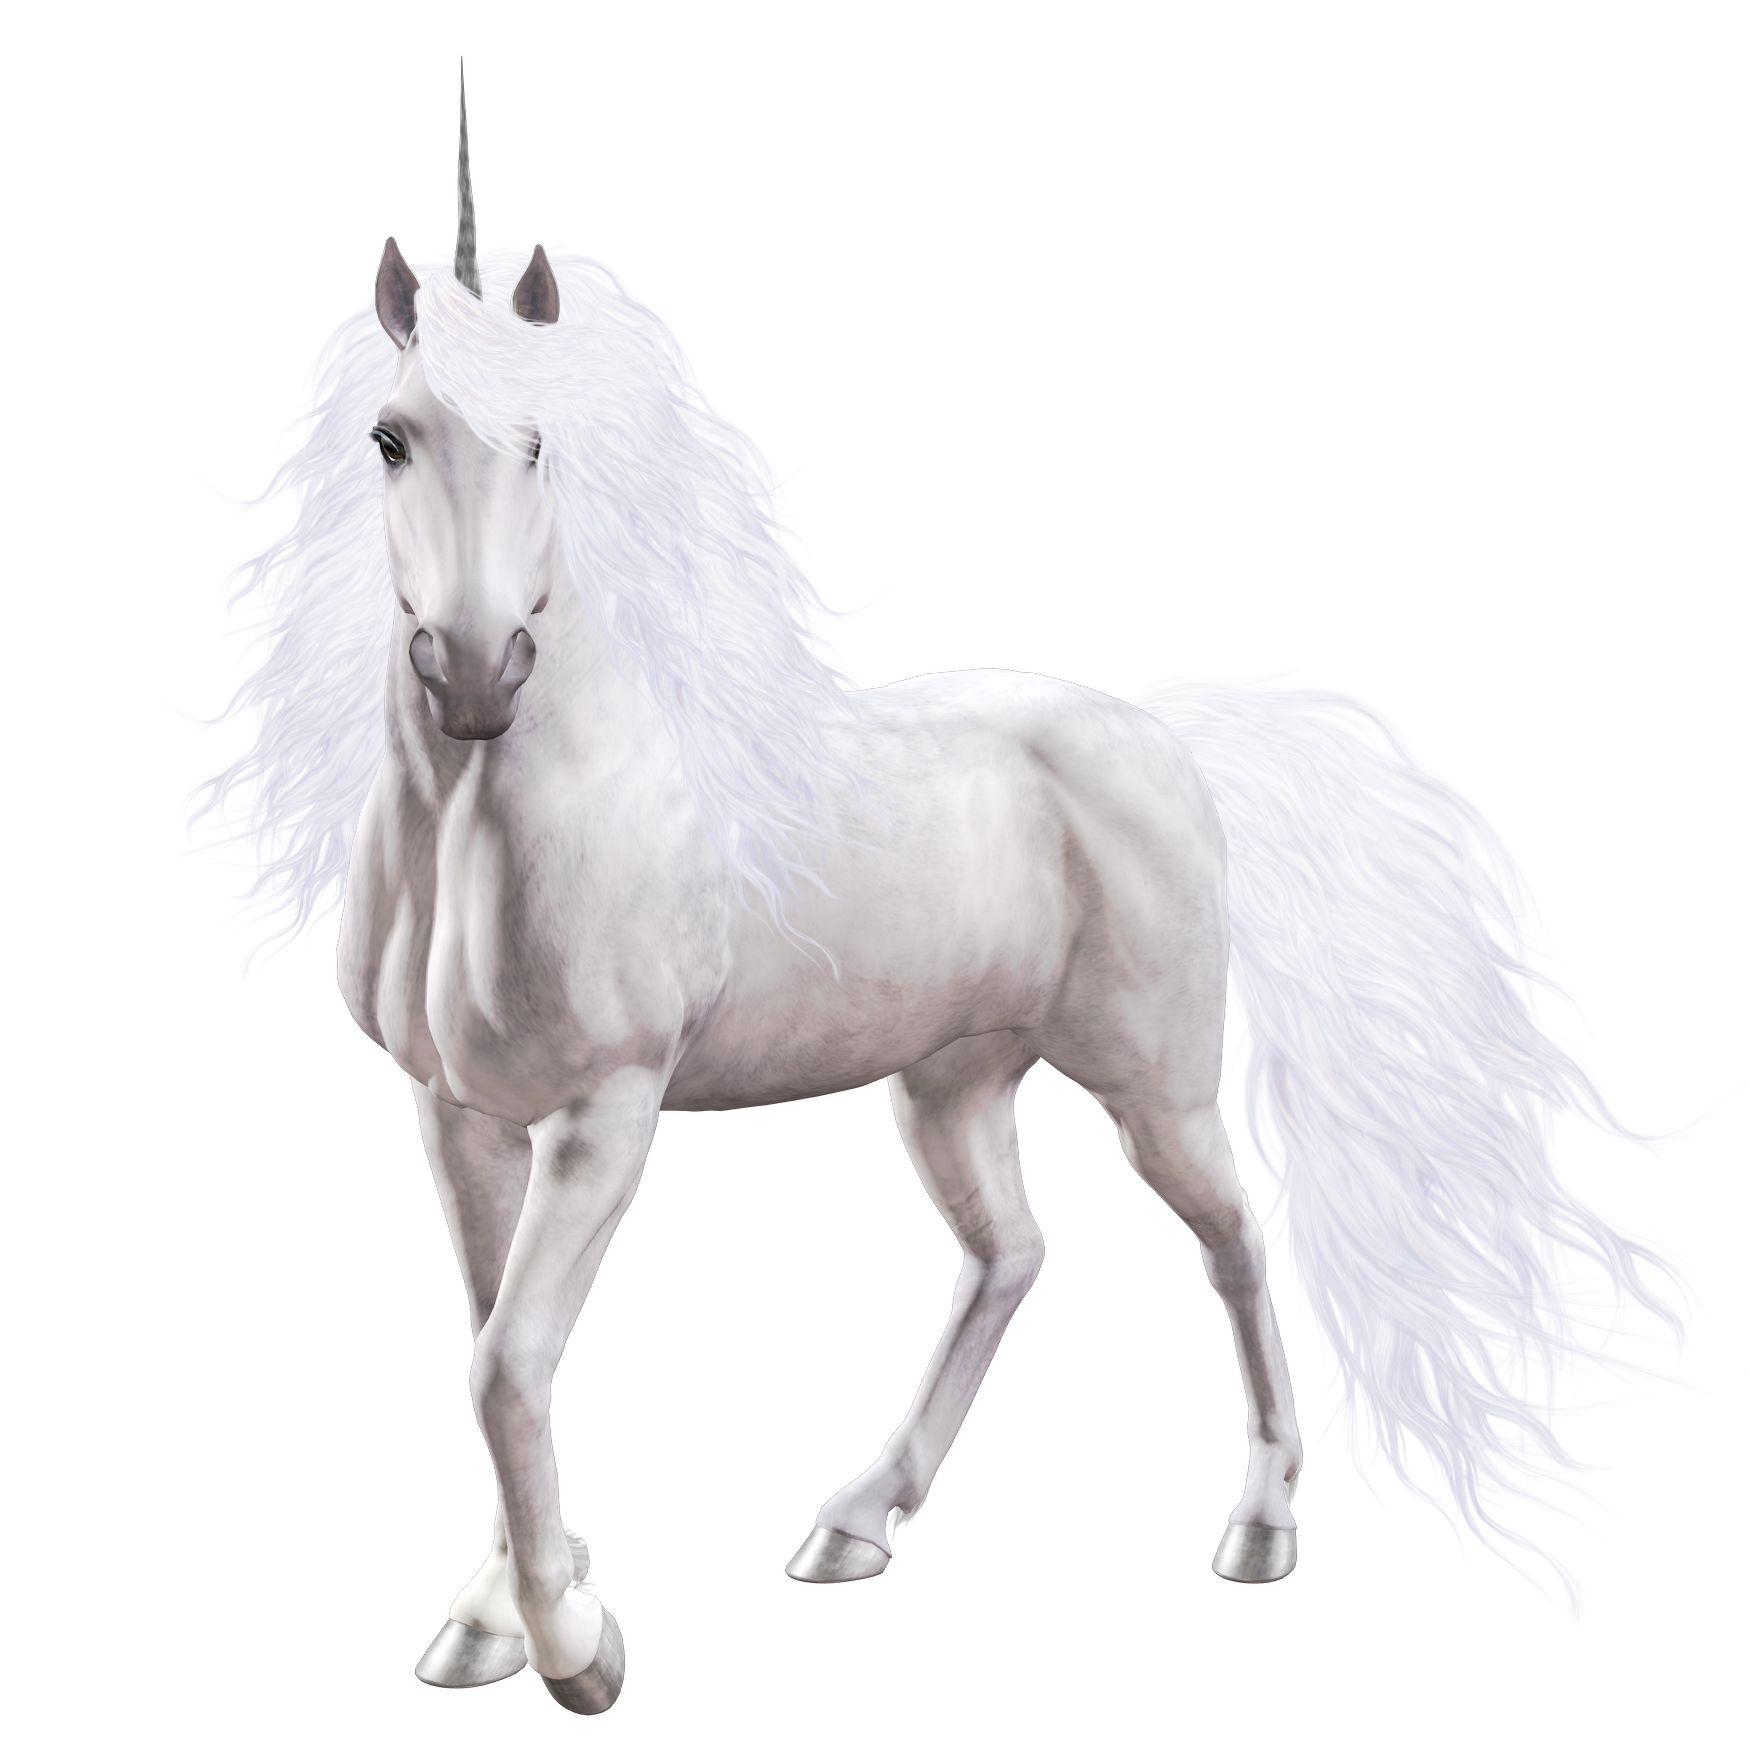 Nicorn png. Unicorn images free download